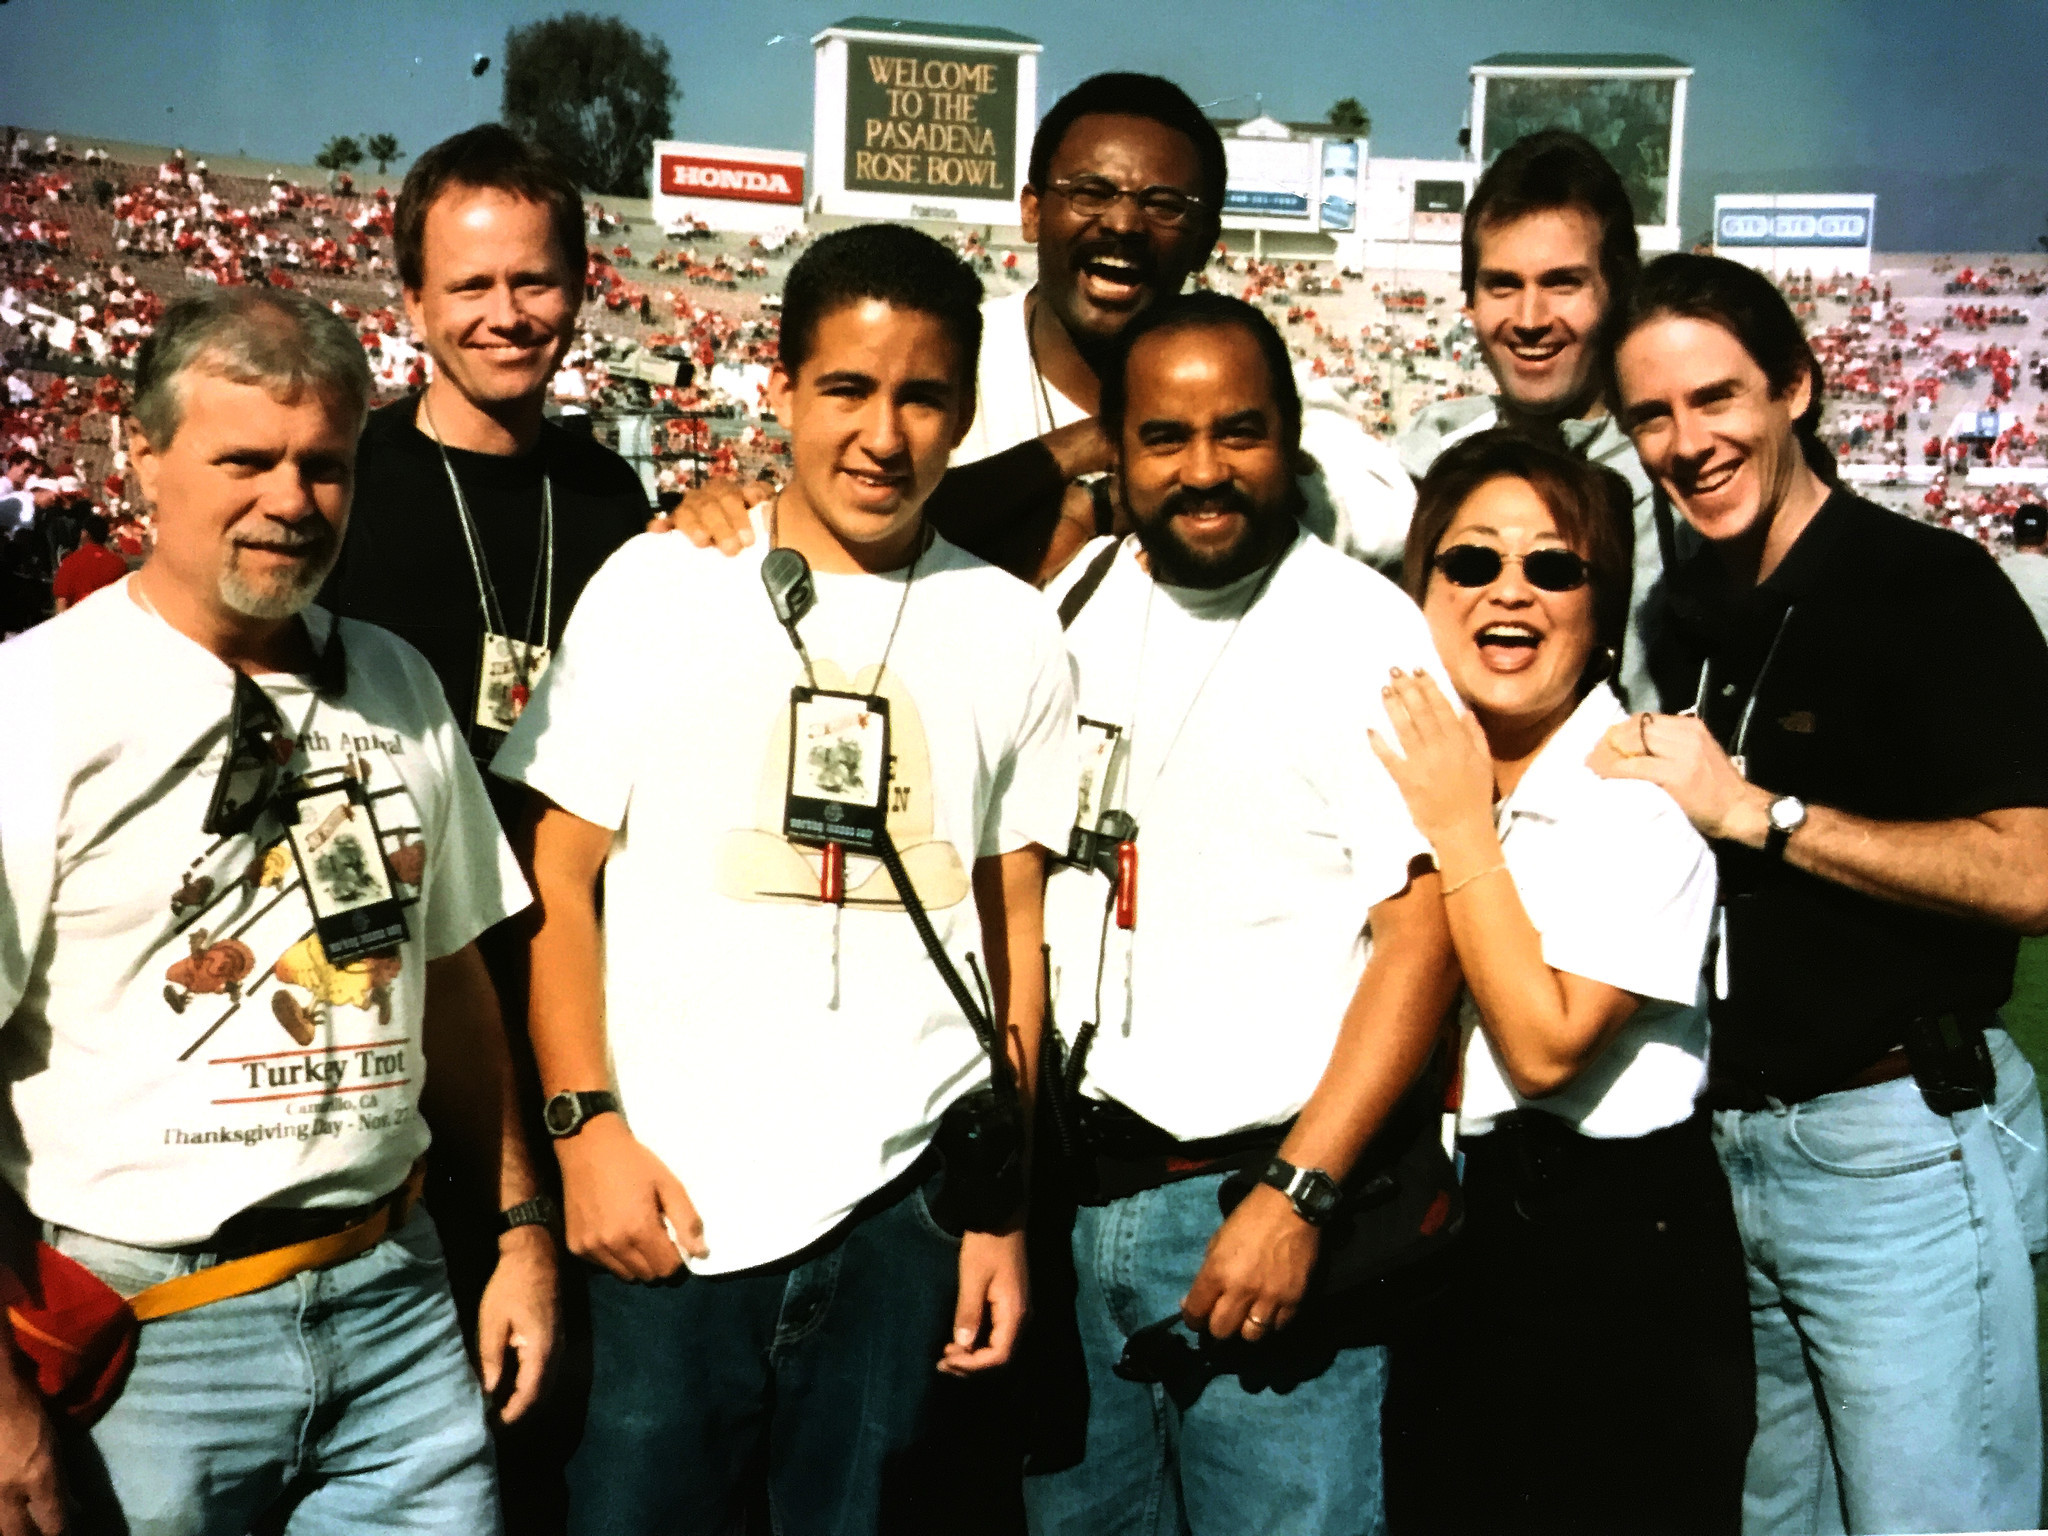 Anacleto Rapping, center, with his son Mathew, at the Rose Bowl.